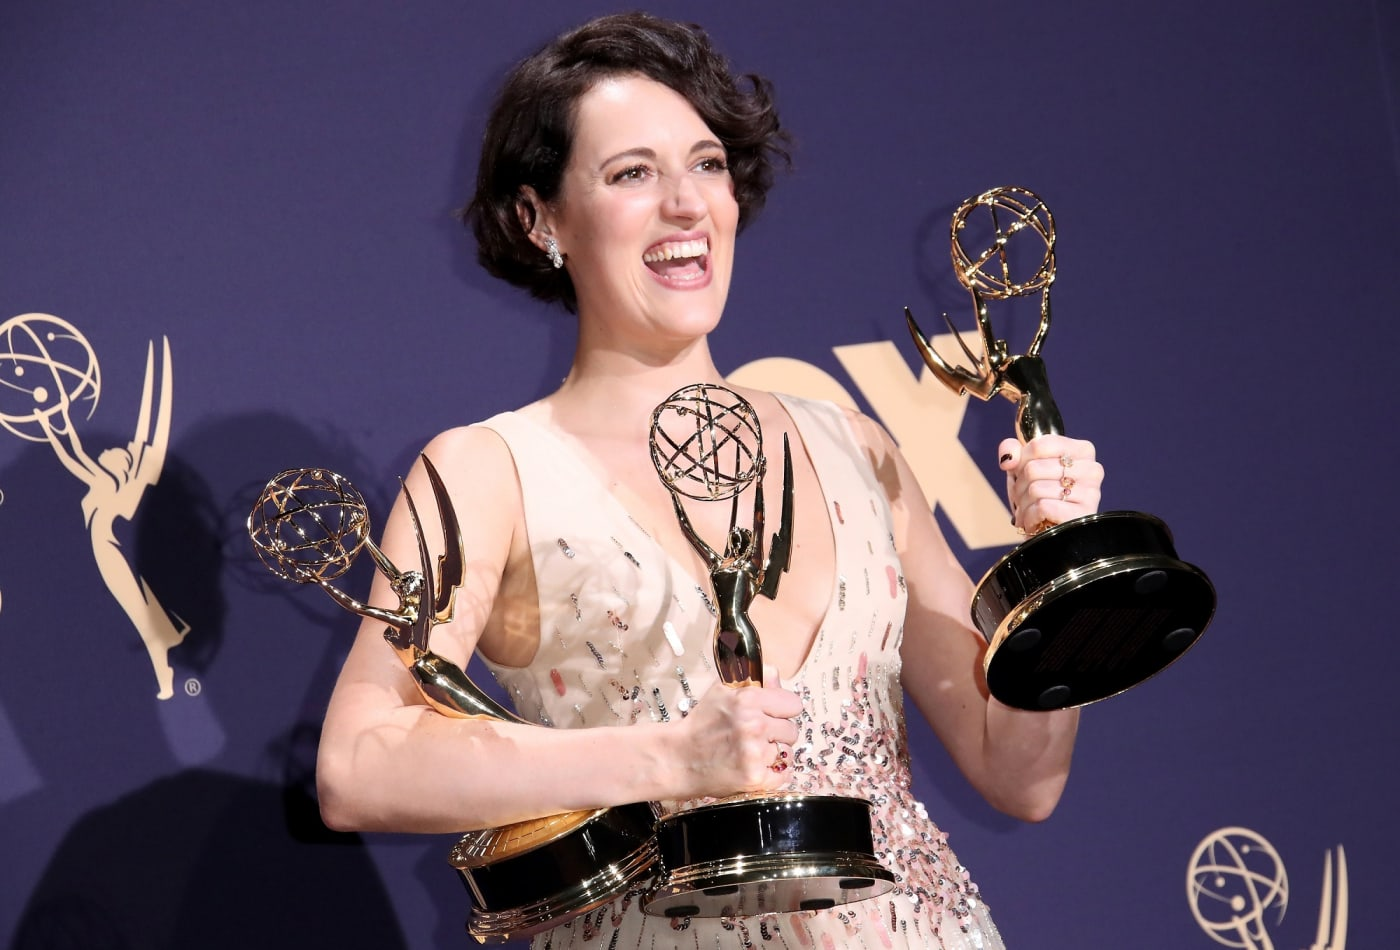 Phoebe Waller-Bridge (pictured) was by far one of the biggest surprises and winners on the night, winning three awards  Photo courtesy of CNBC, who got it from Dan Macmedan from Wire Image